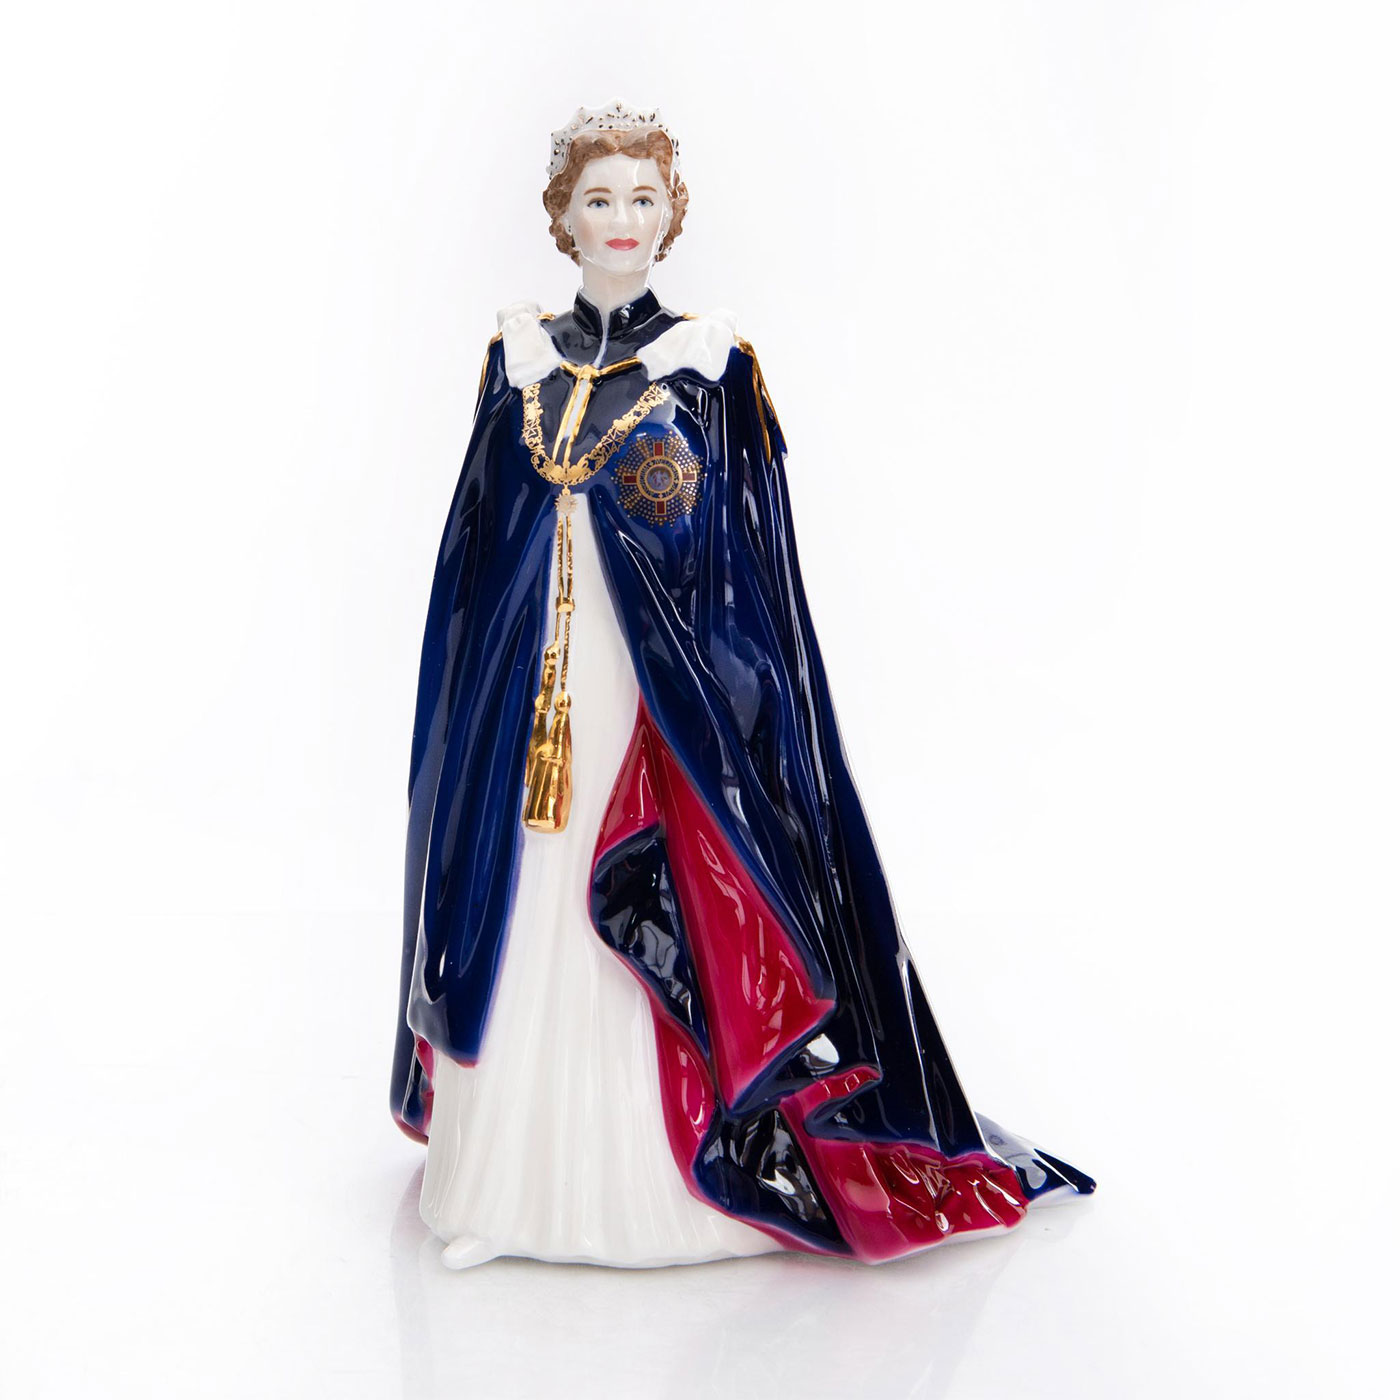 antiques and collectibles for sale